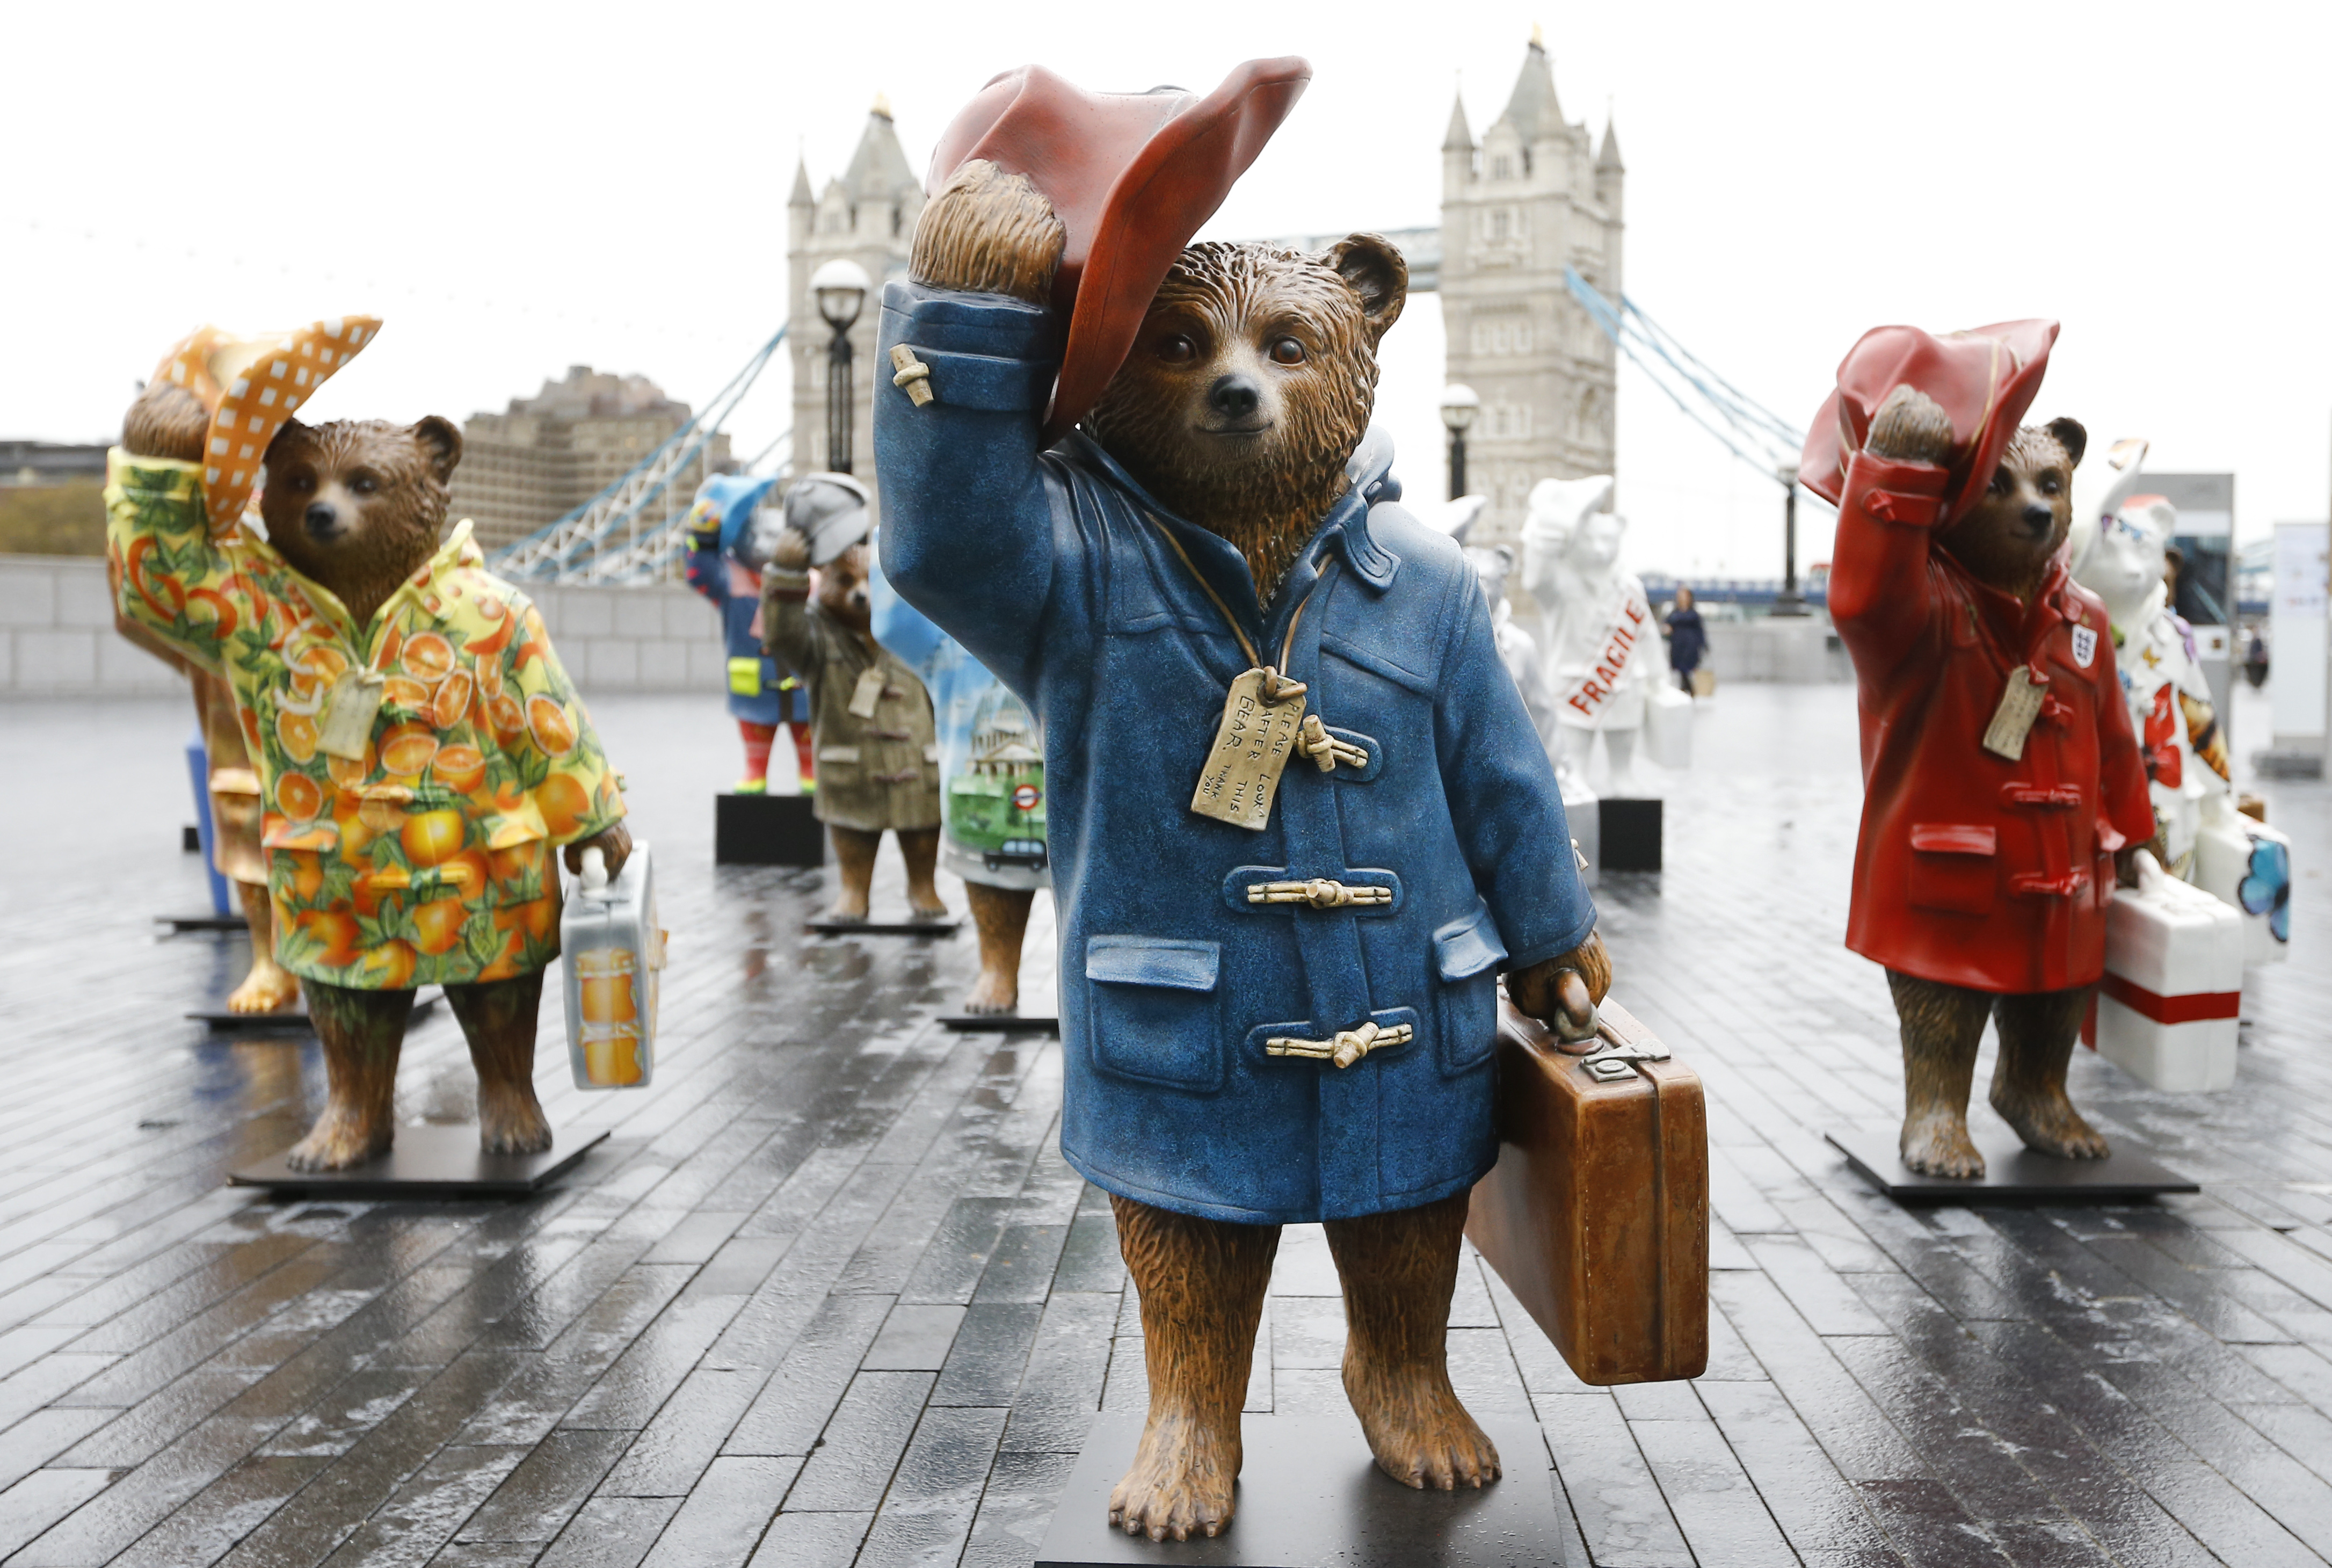 Statues of Paddington Bear stand near Tower Bridge in London, Monday, Nov. 3, 2014. The bear was one of many statues at the press launch for The Paddington Trail, which will run from Nov. 4. Fifty Paddington statues will be placed across the capital ahead of the release of the film 'Paddington' in UK cinemas on Nov. 28, 2014. The statues all decorated by various celebrities will be auctioned in Dec. to raise money for the NSPCC and its ChildLine service.